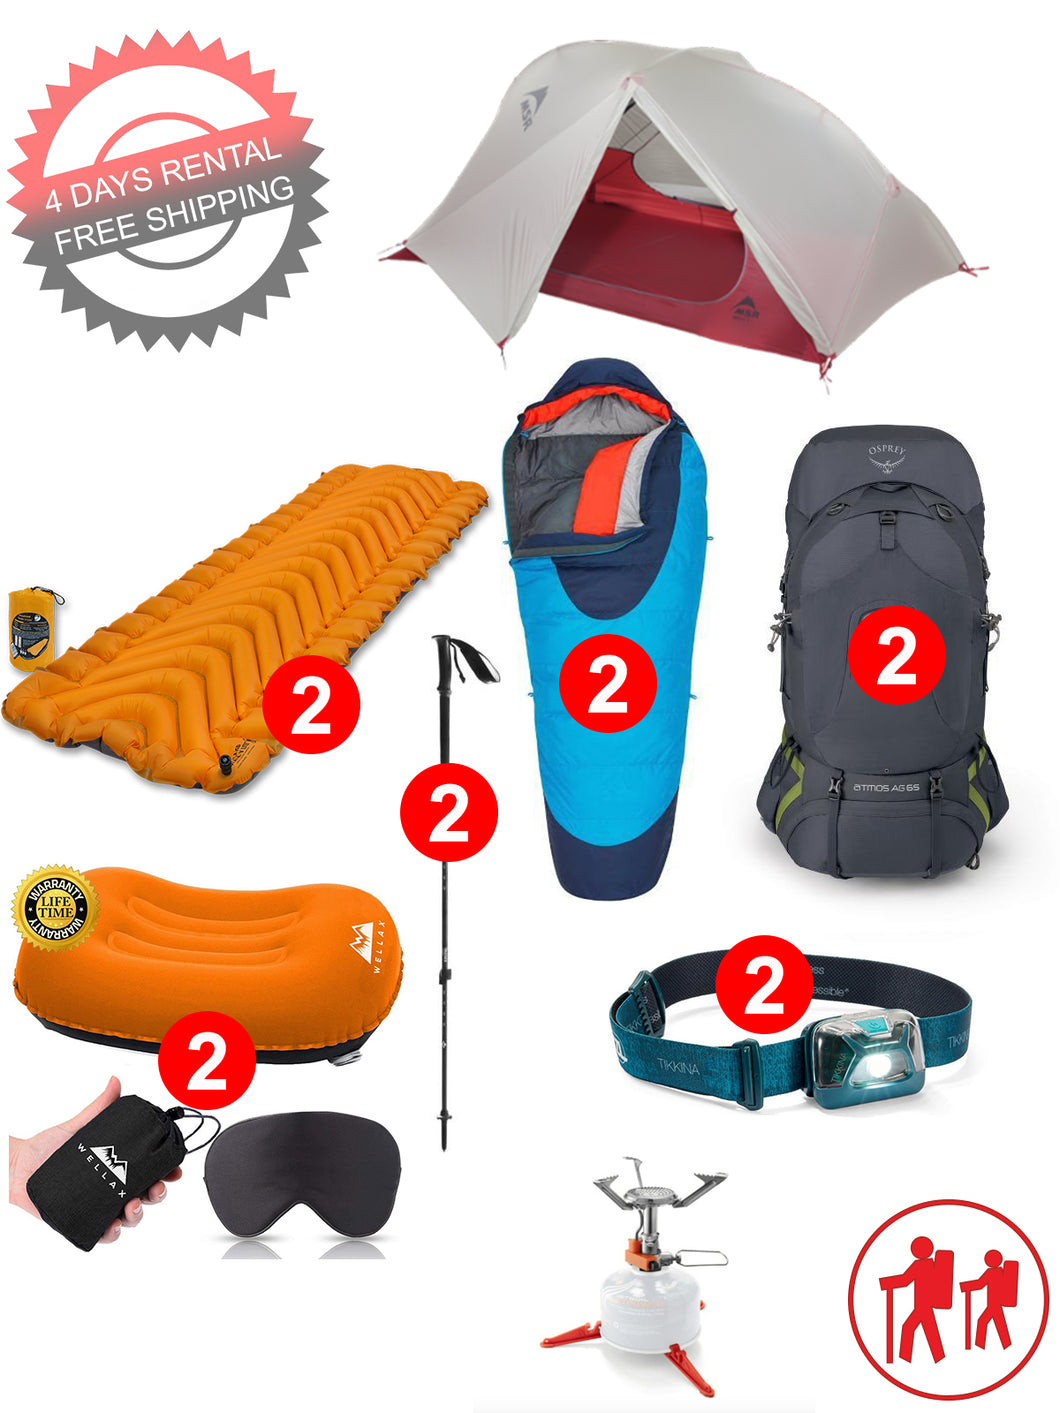 2 person camping package